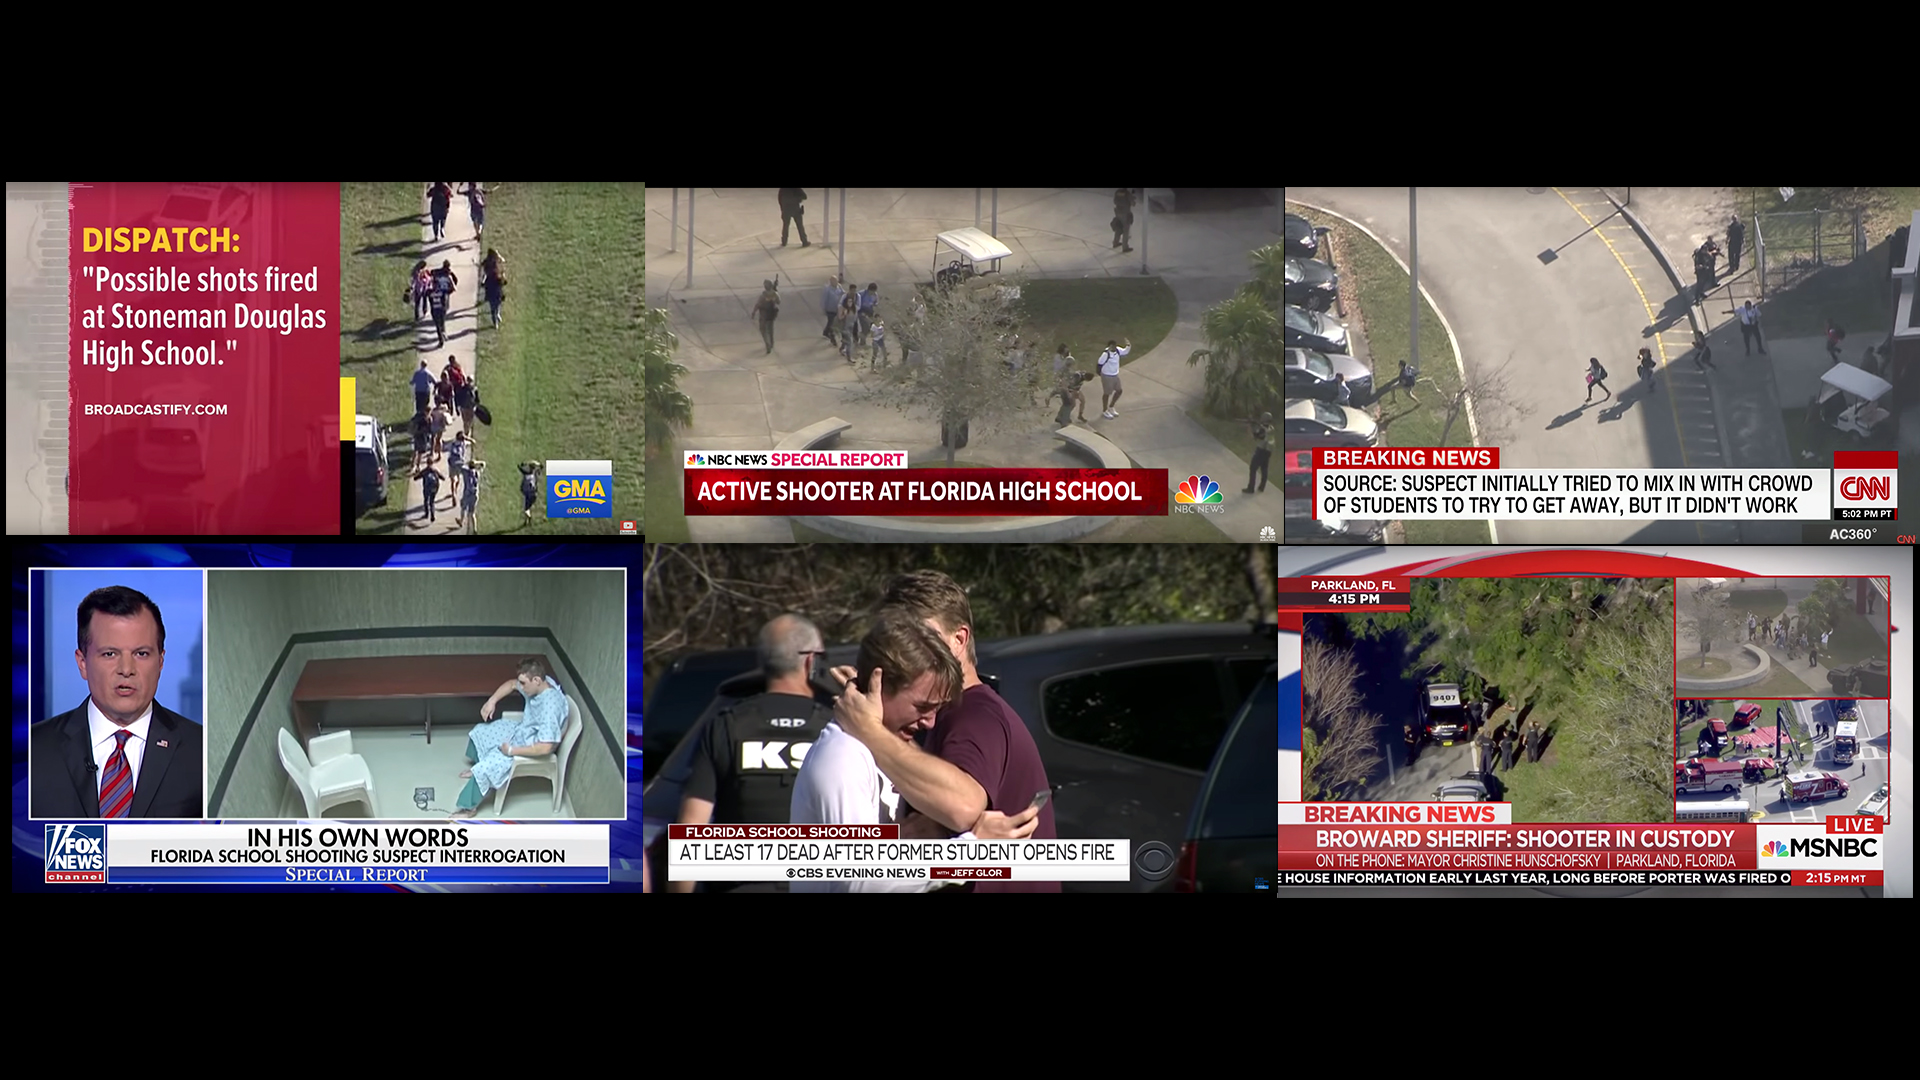 CNN broadcast shots